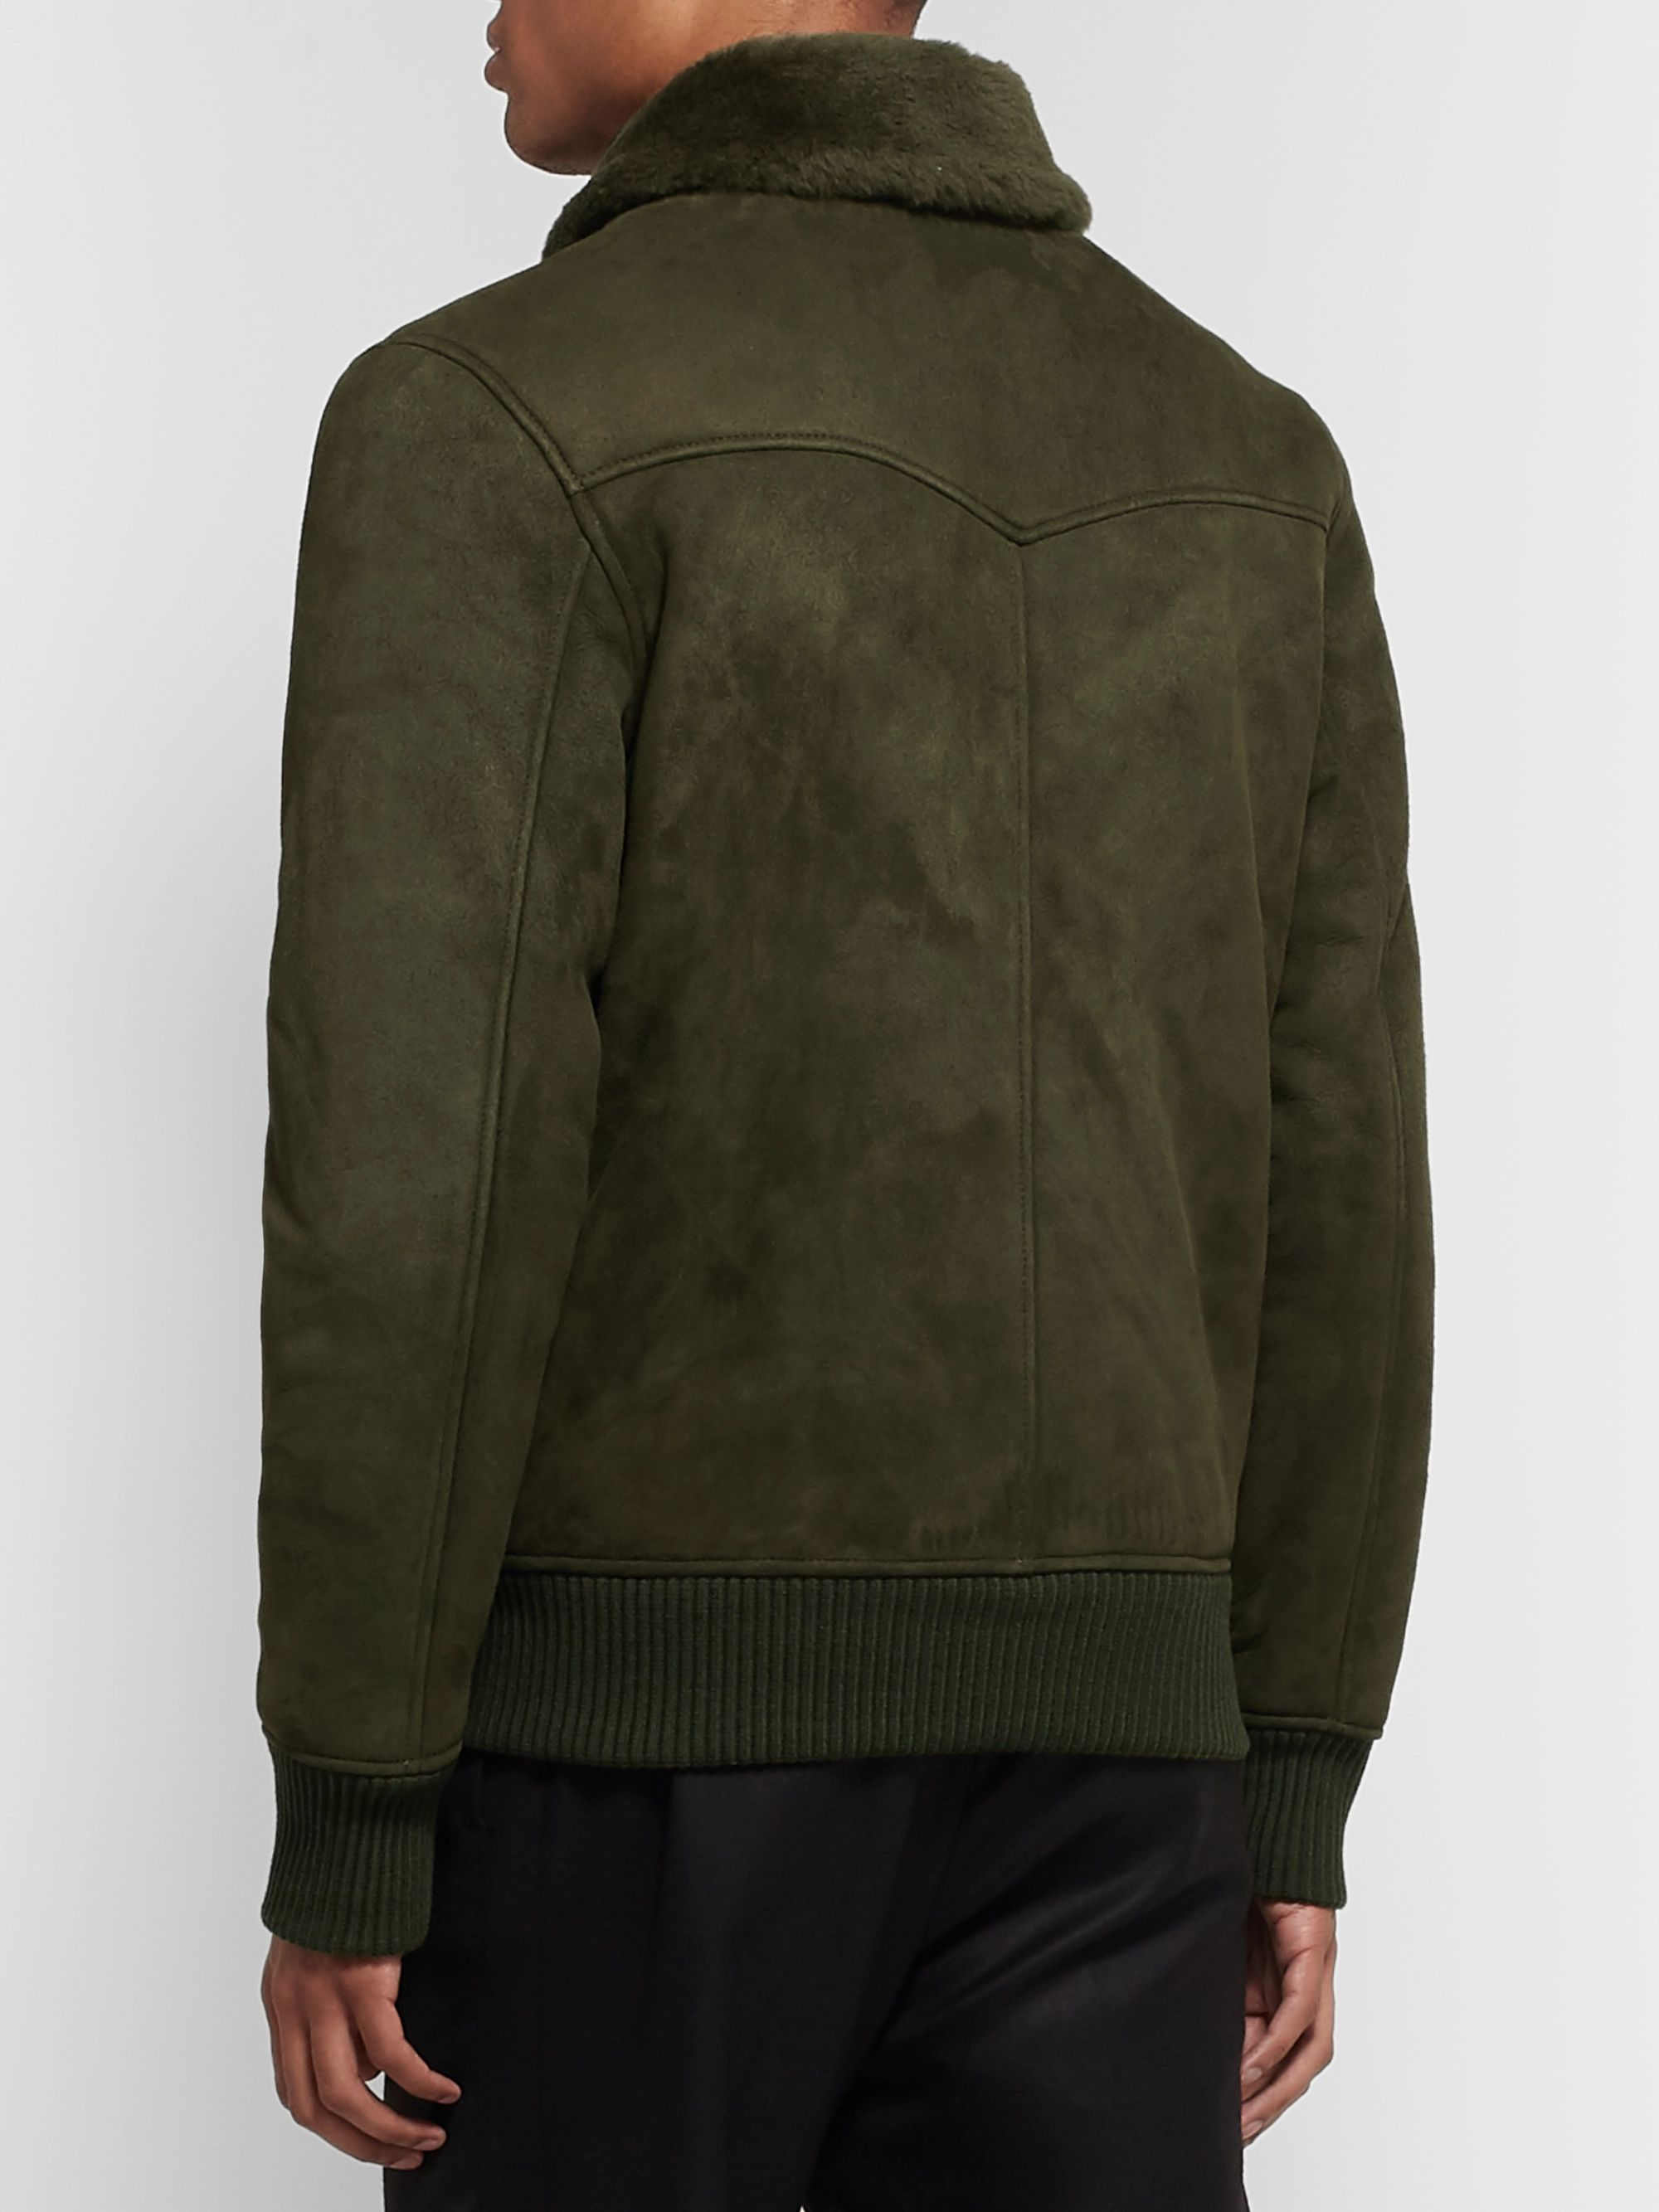 Officine Generale Saul Shearling Bomber Jacket